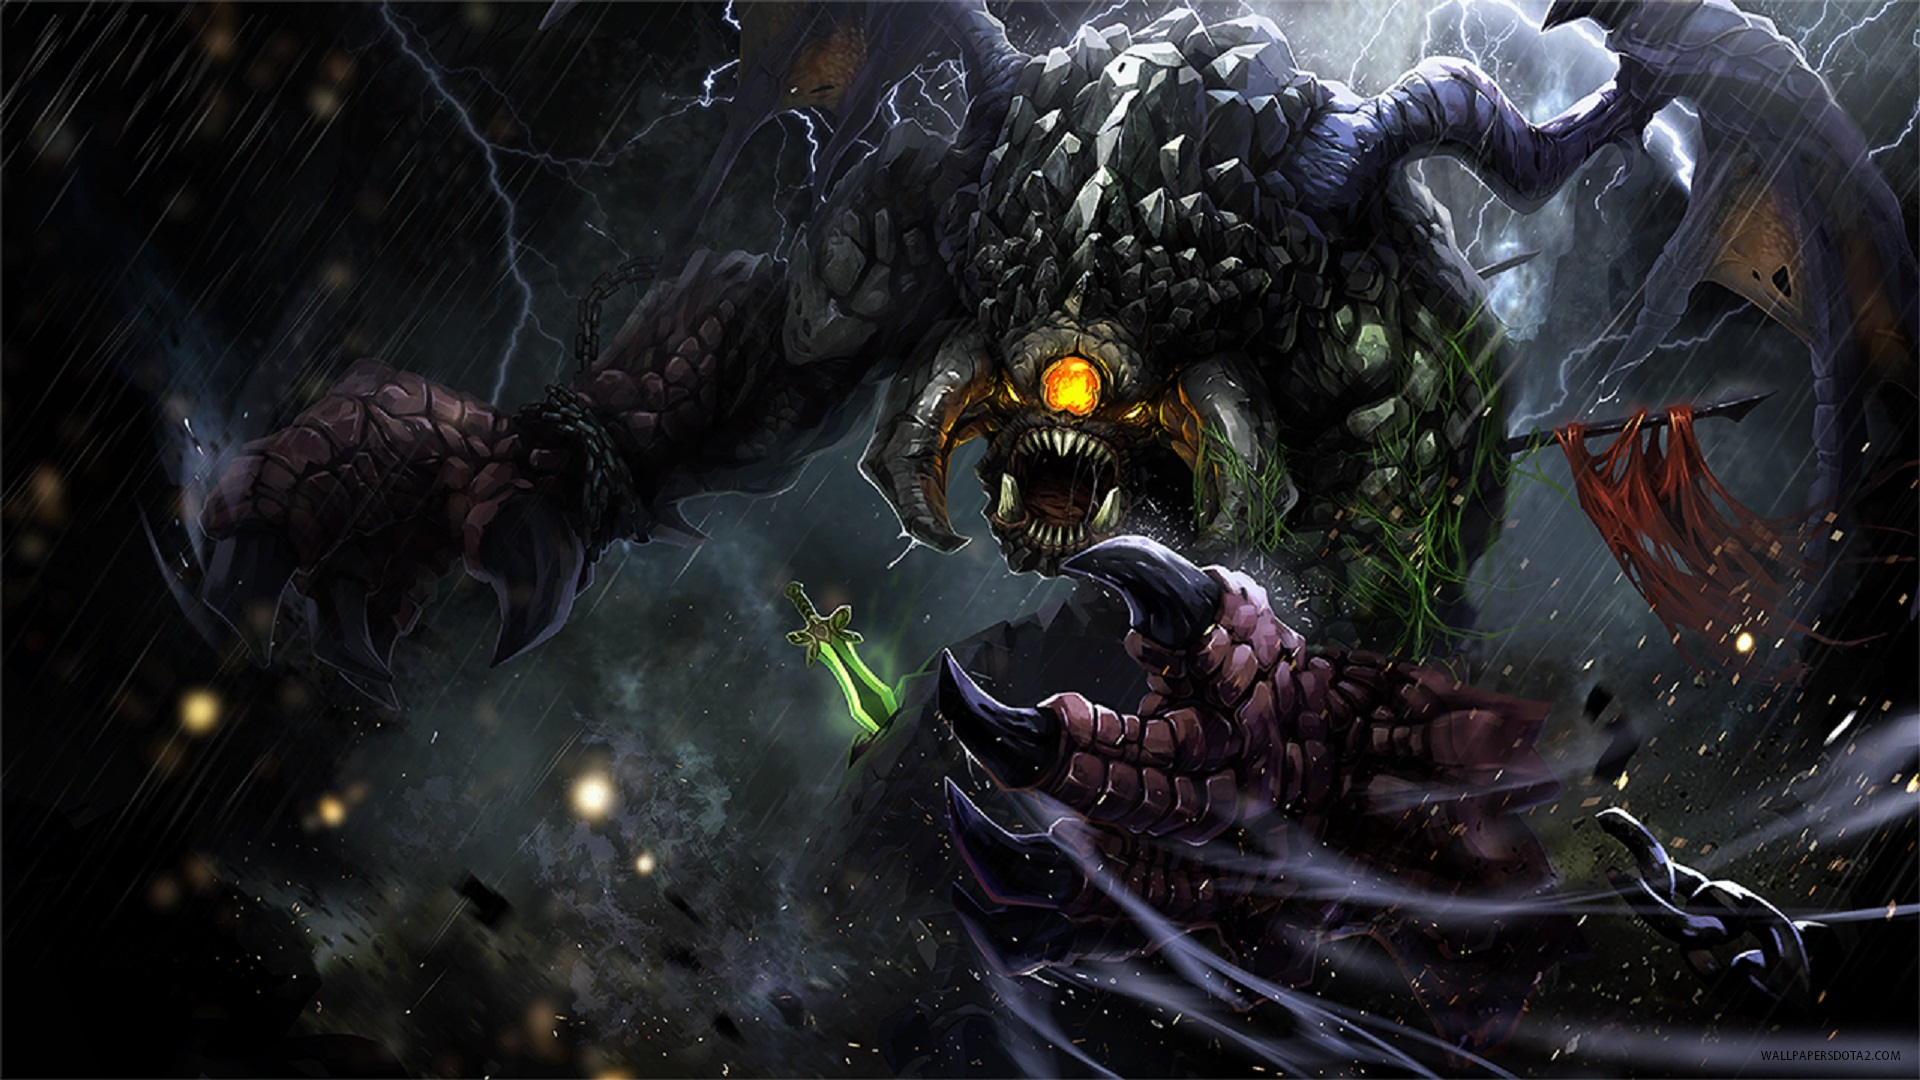 Roshan Dota 2 wallpaper in desktop Wallpapers Dota 2 private collection, Background Image